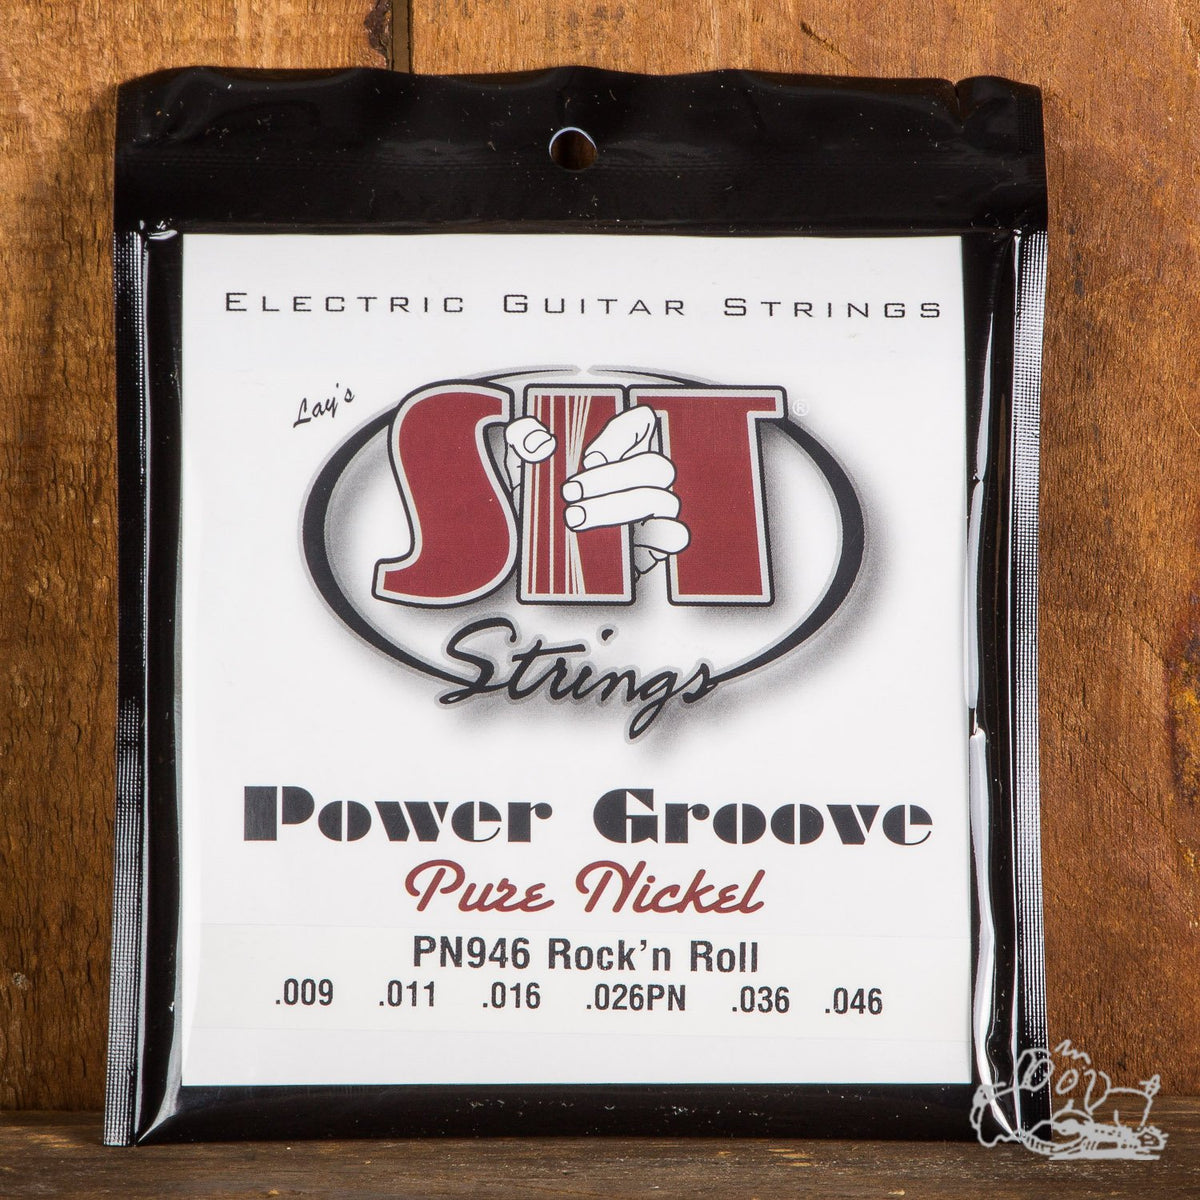 S.I.T. Power Groove Pure Nickel Electric Guitar Strings